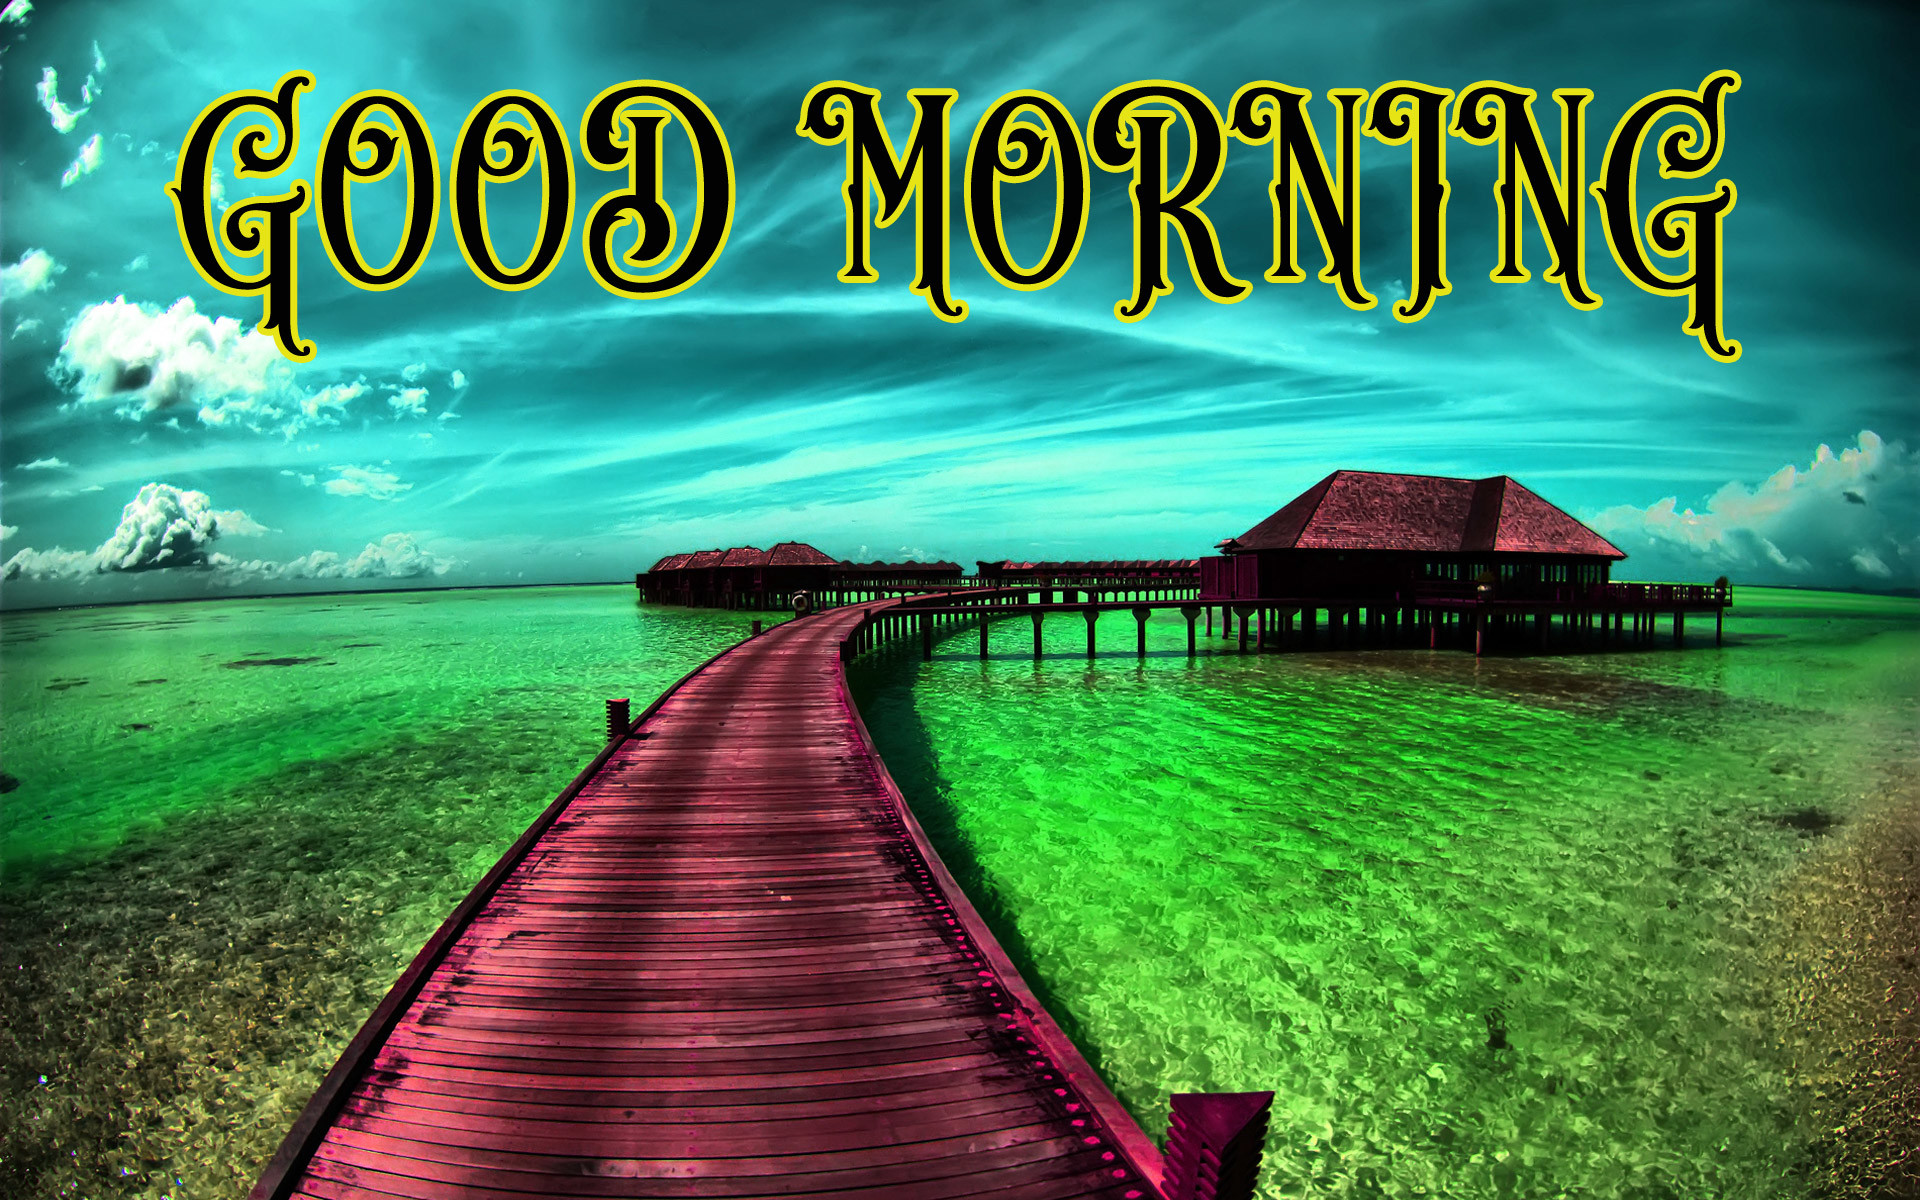 Good Morning Images For Facebook Tumblr Pinterest And - Cool Background Nature - HD Wallpaper